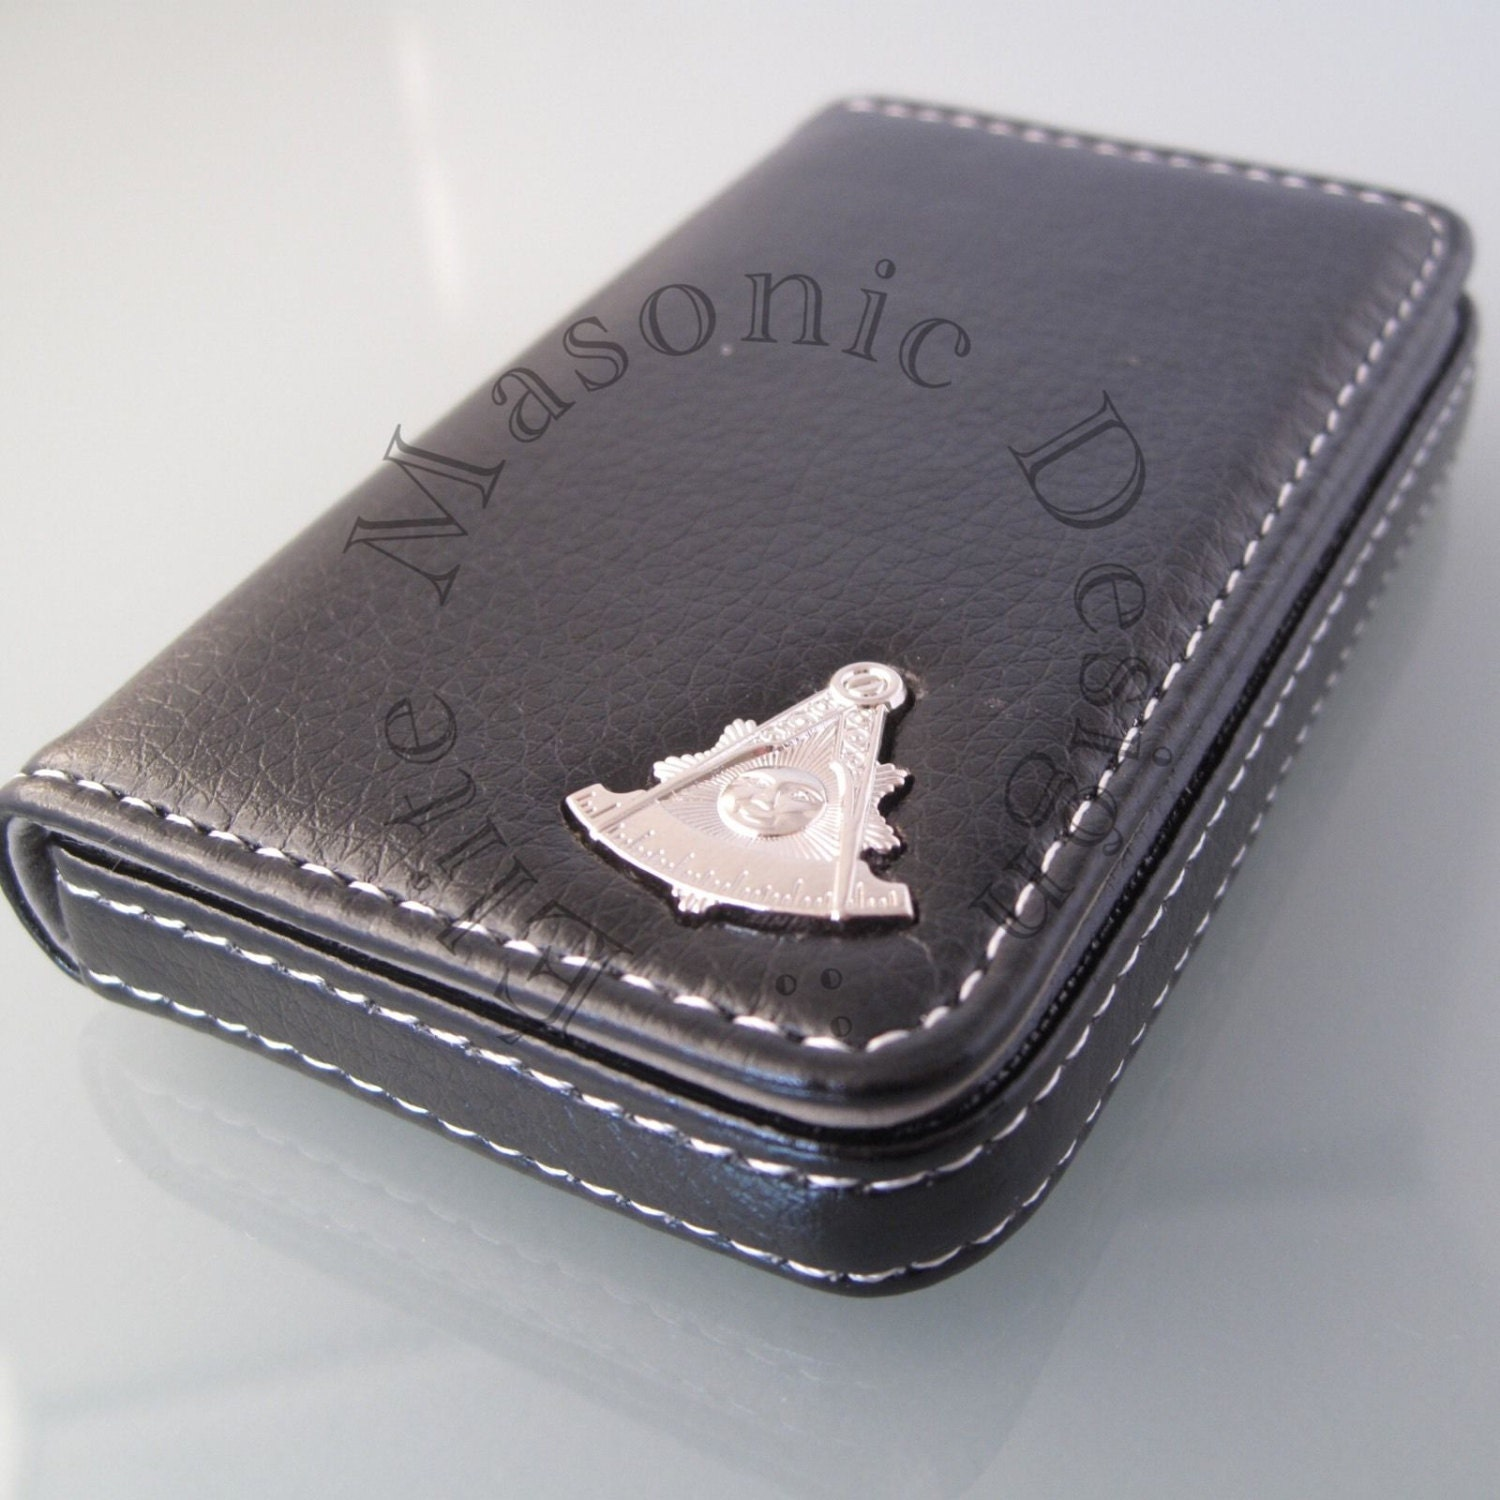 Masonic Past Master Business Card or Dues Card Holder